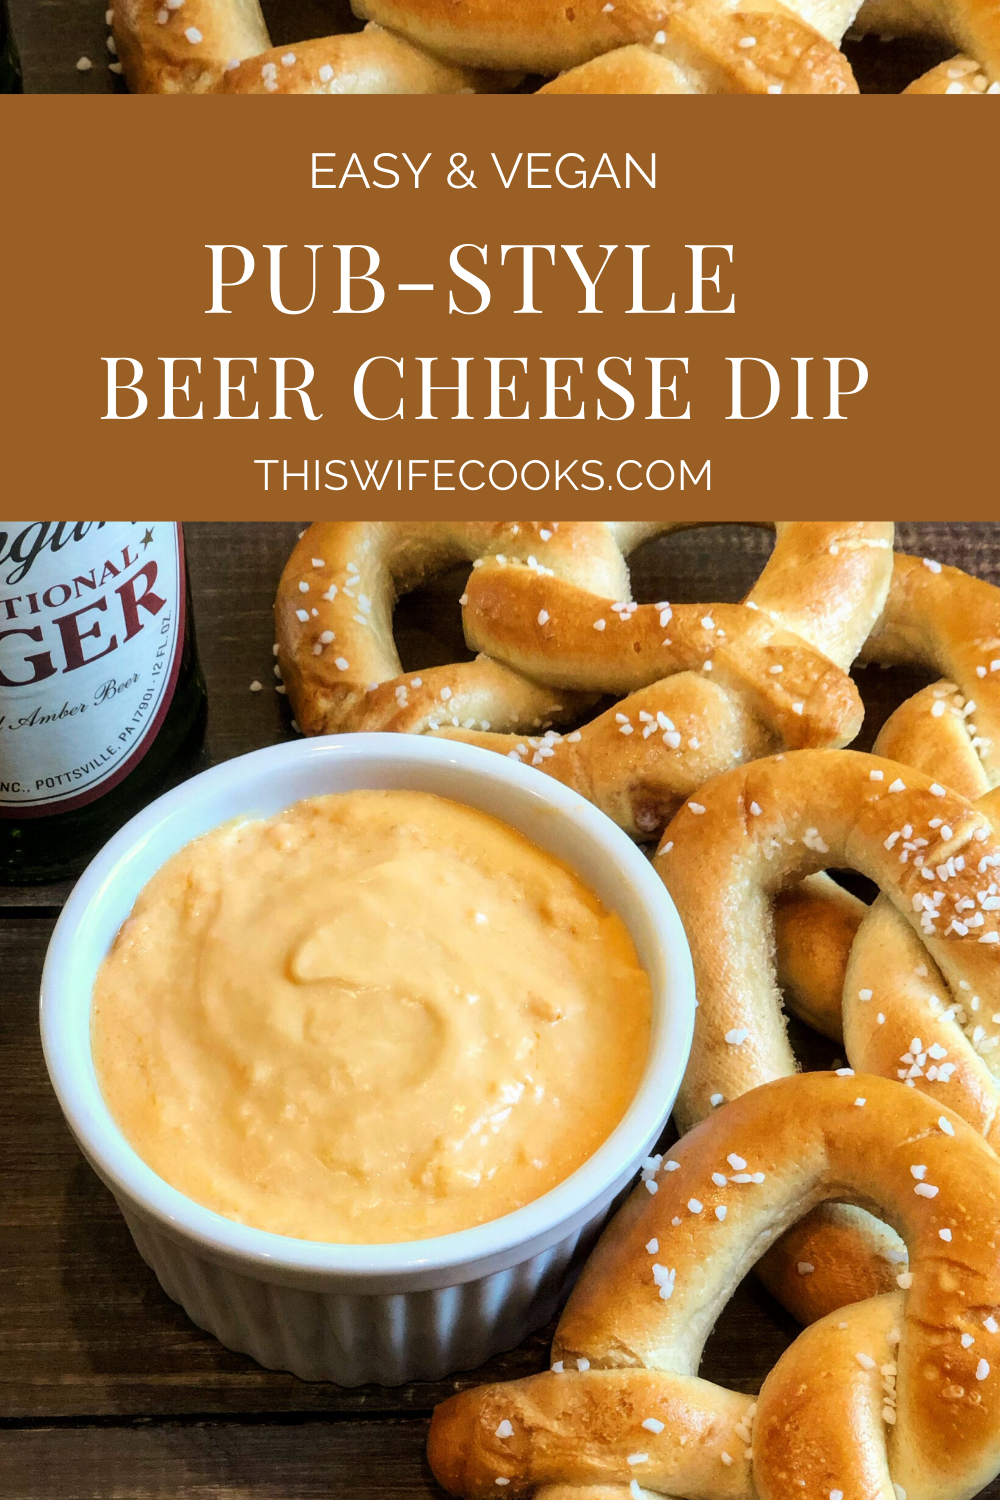 Vegan Pub Style Beer Cheese Dip - All the classic beer cheese flavor you know and love in a quick and easy vegan dip!  #vegancheesedip #veganbeercheese #thiswifecooksrecipes #plantbasedrecipes #easyvegansnacks  via @thiswifecooks